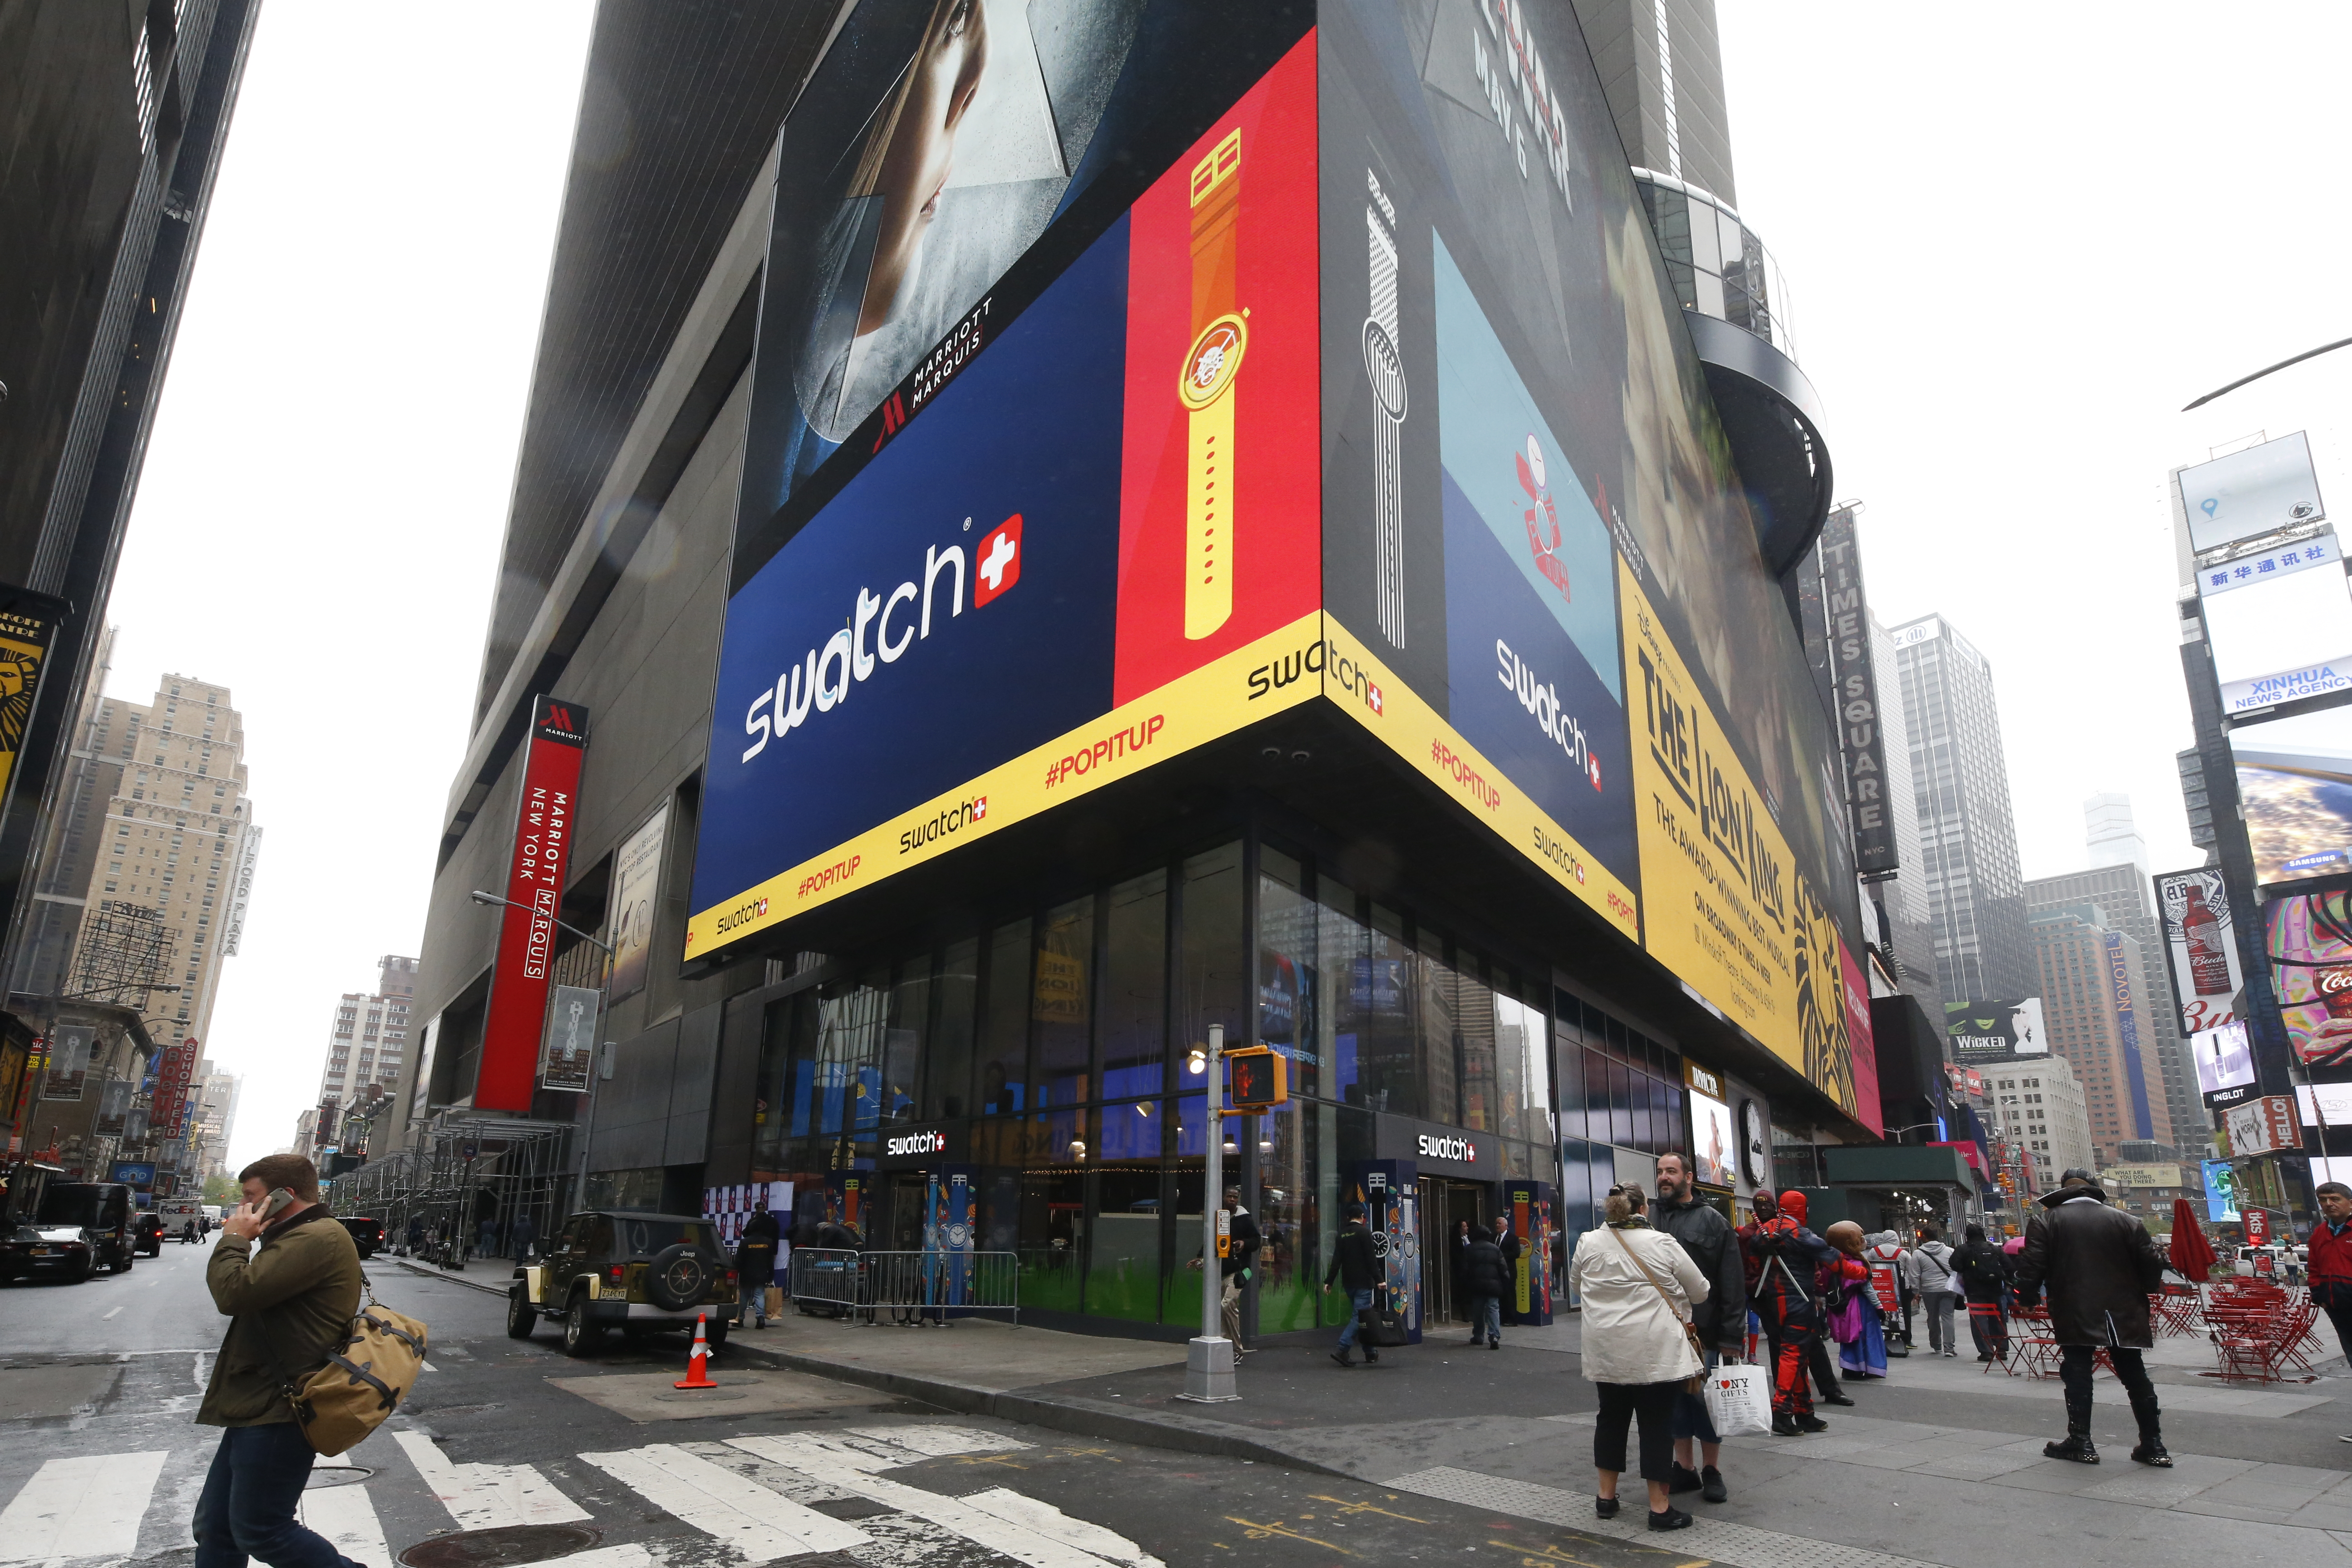 The Swatch store in Times Square